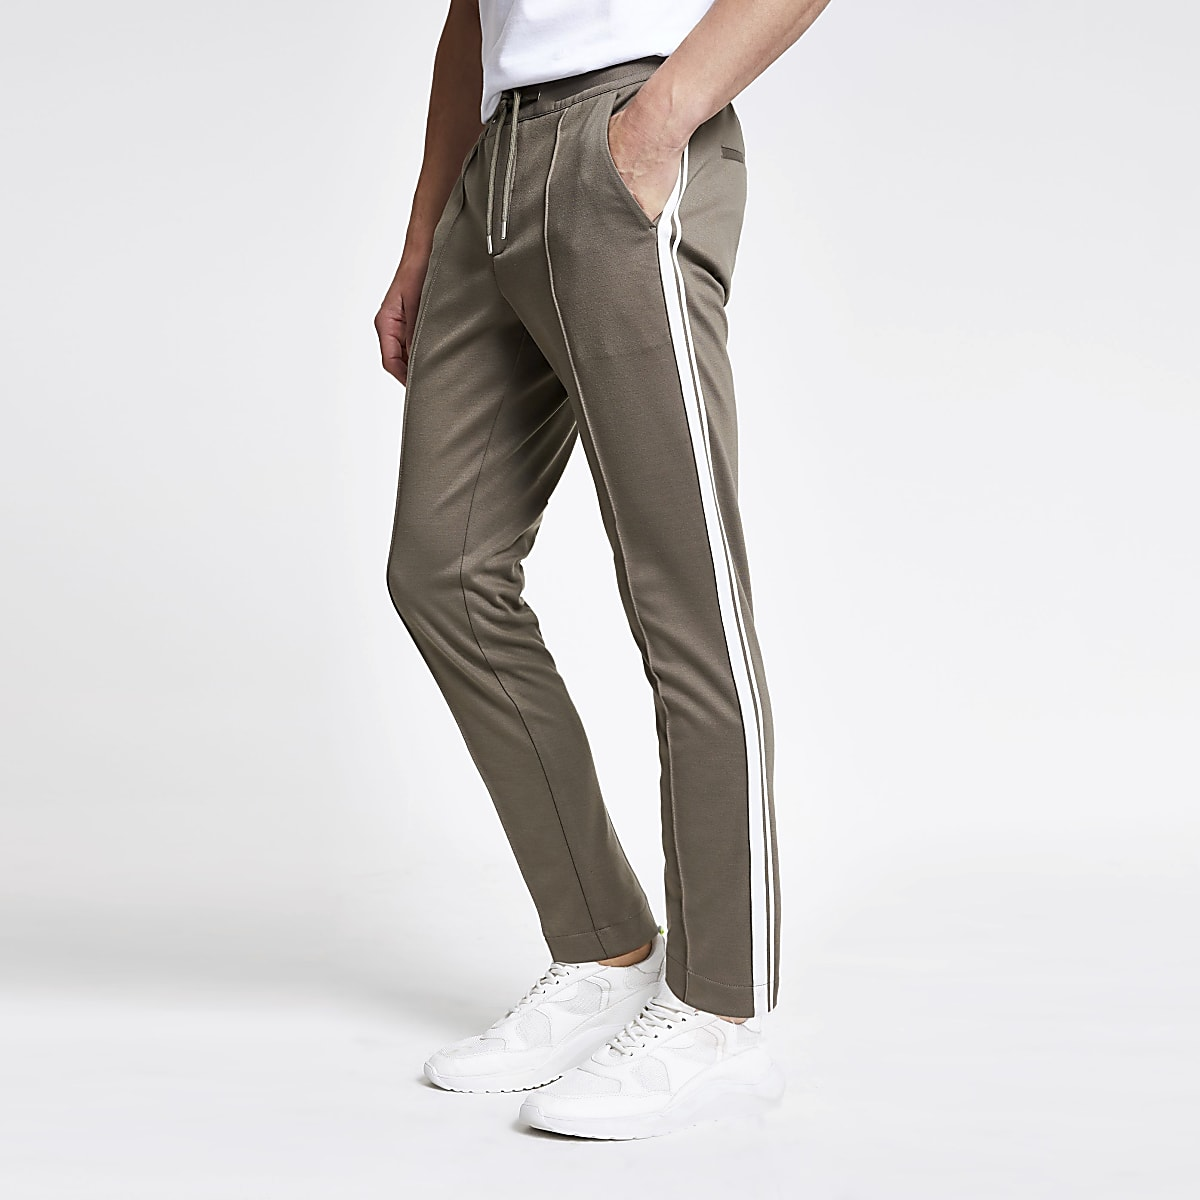 Light green skinny tape trousers